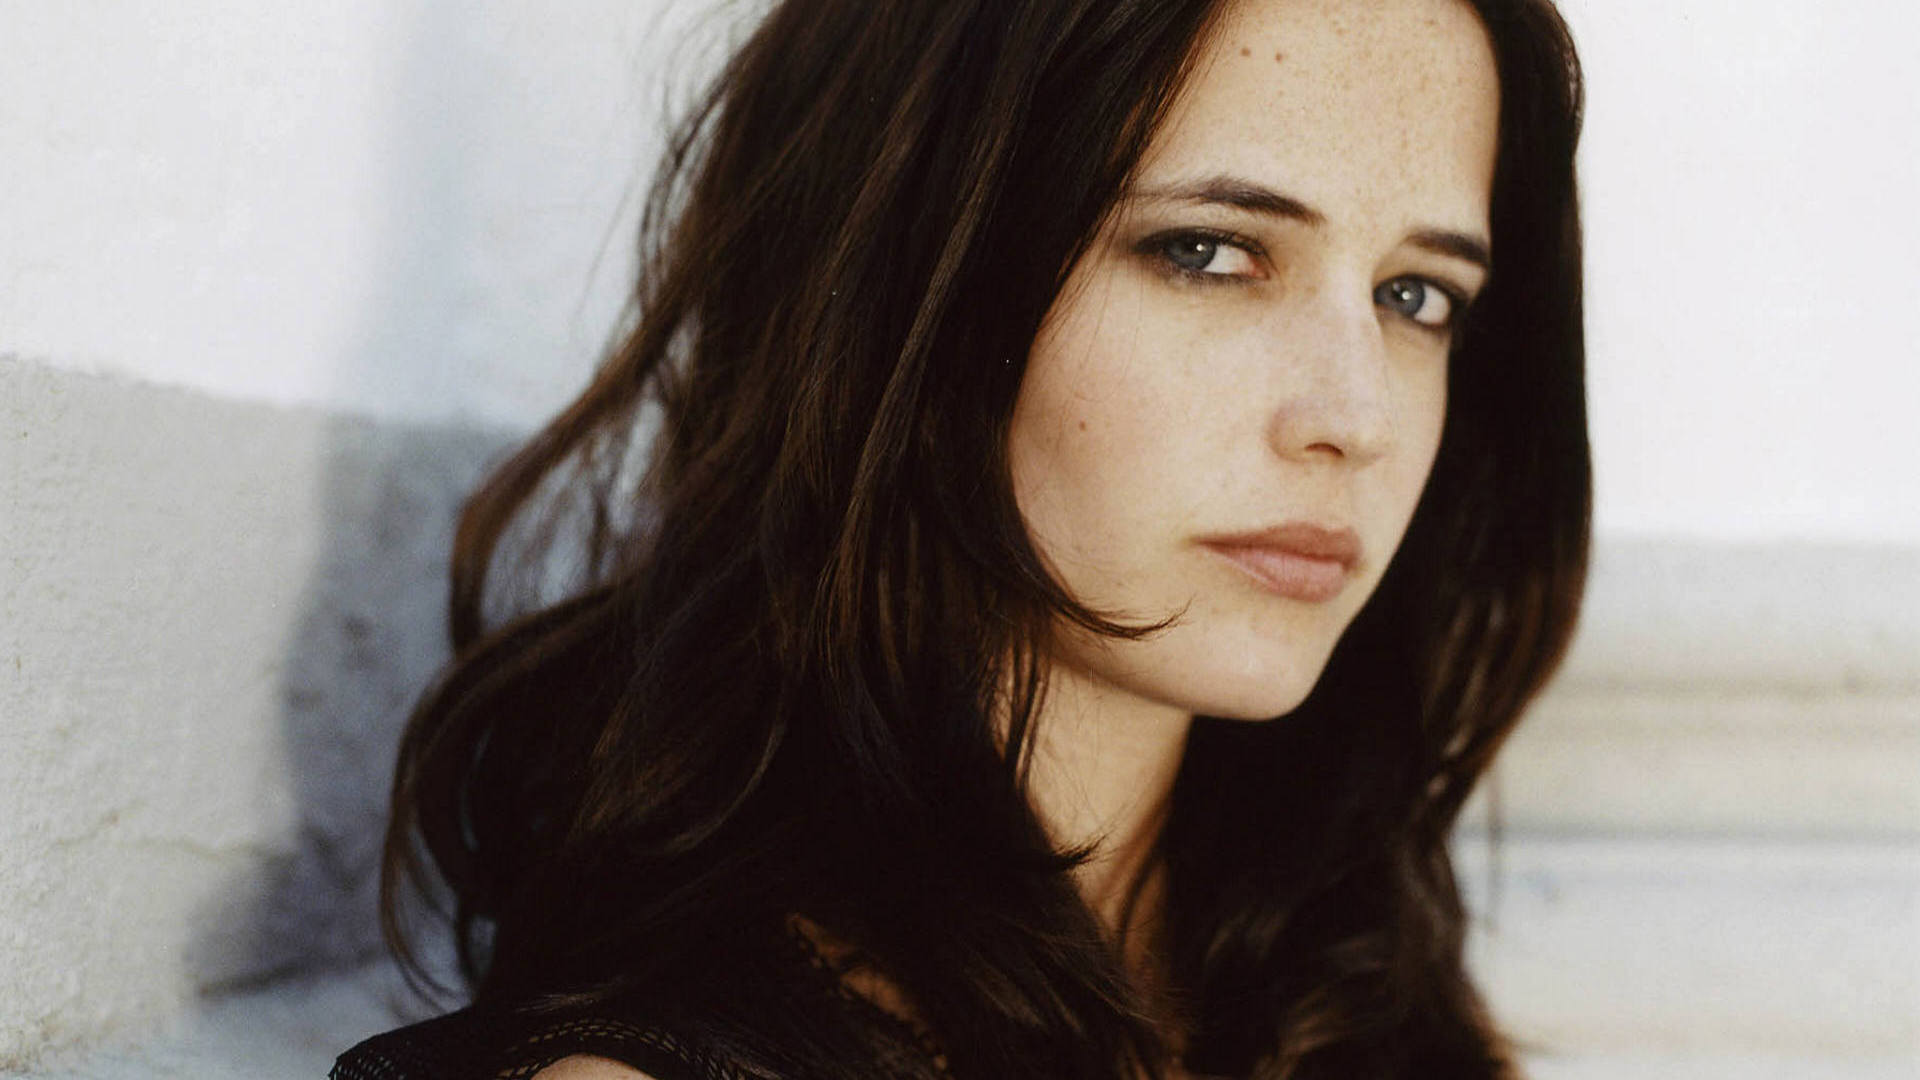 eva green #261976 wallpapers high quality | download free